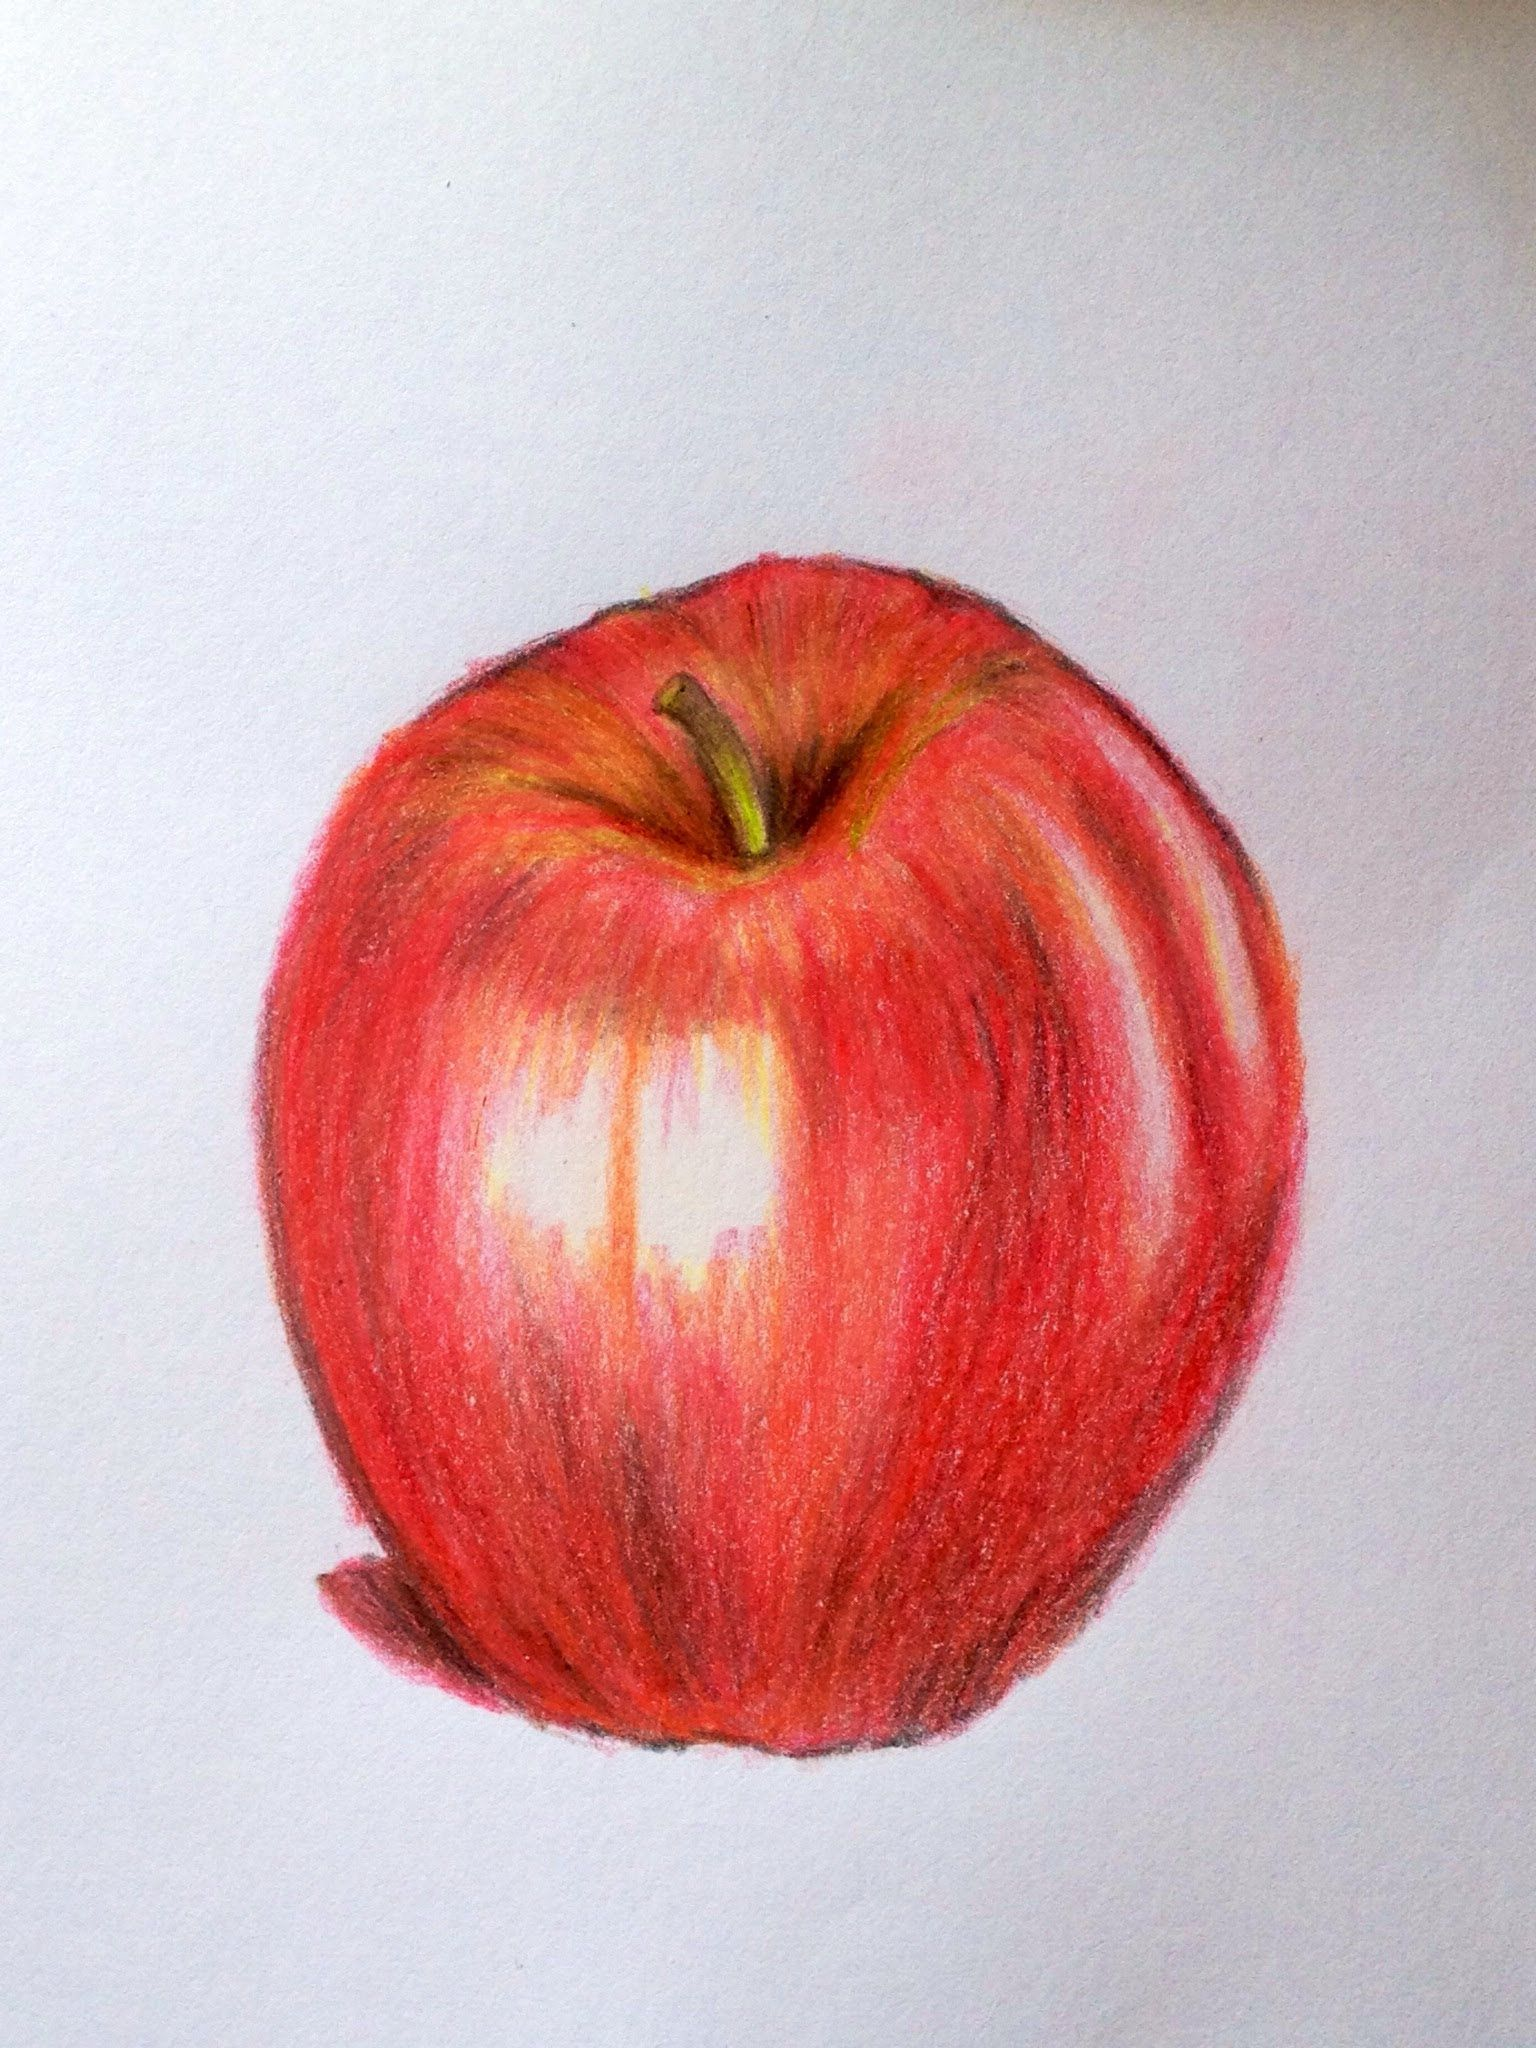 Lets draw a realistic apple